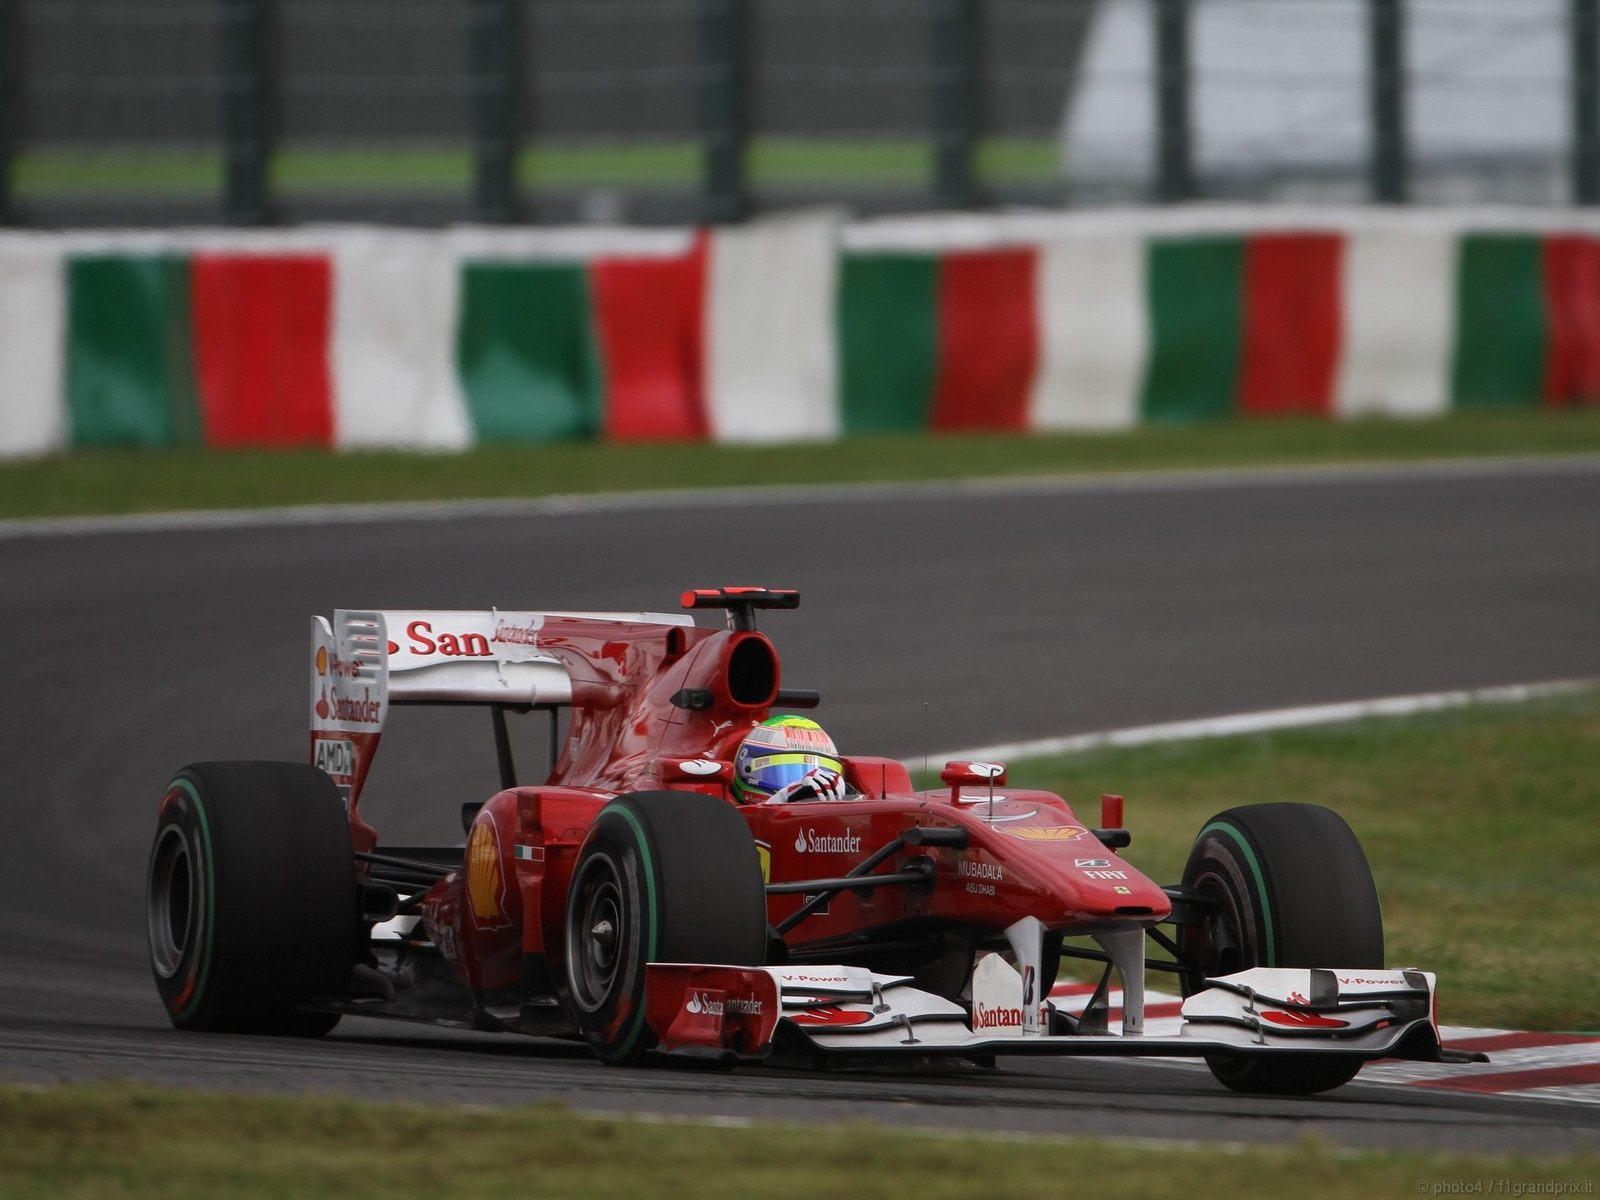 pojazdy - formula1 - gp_giappone_wallpapers_000055